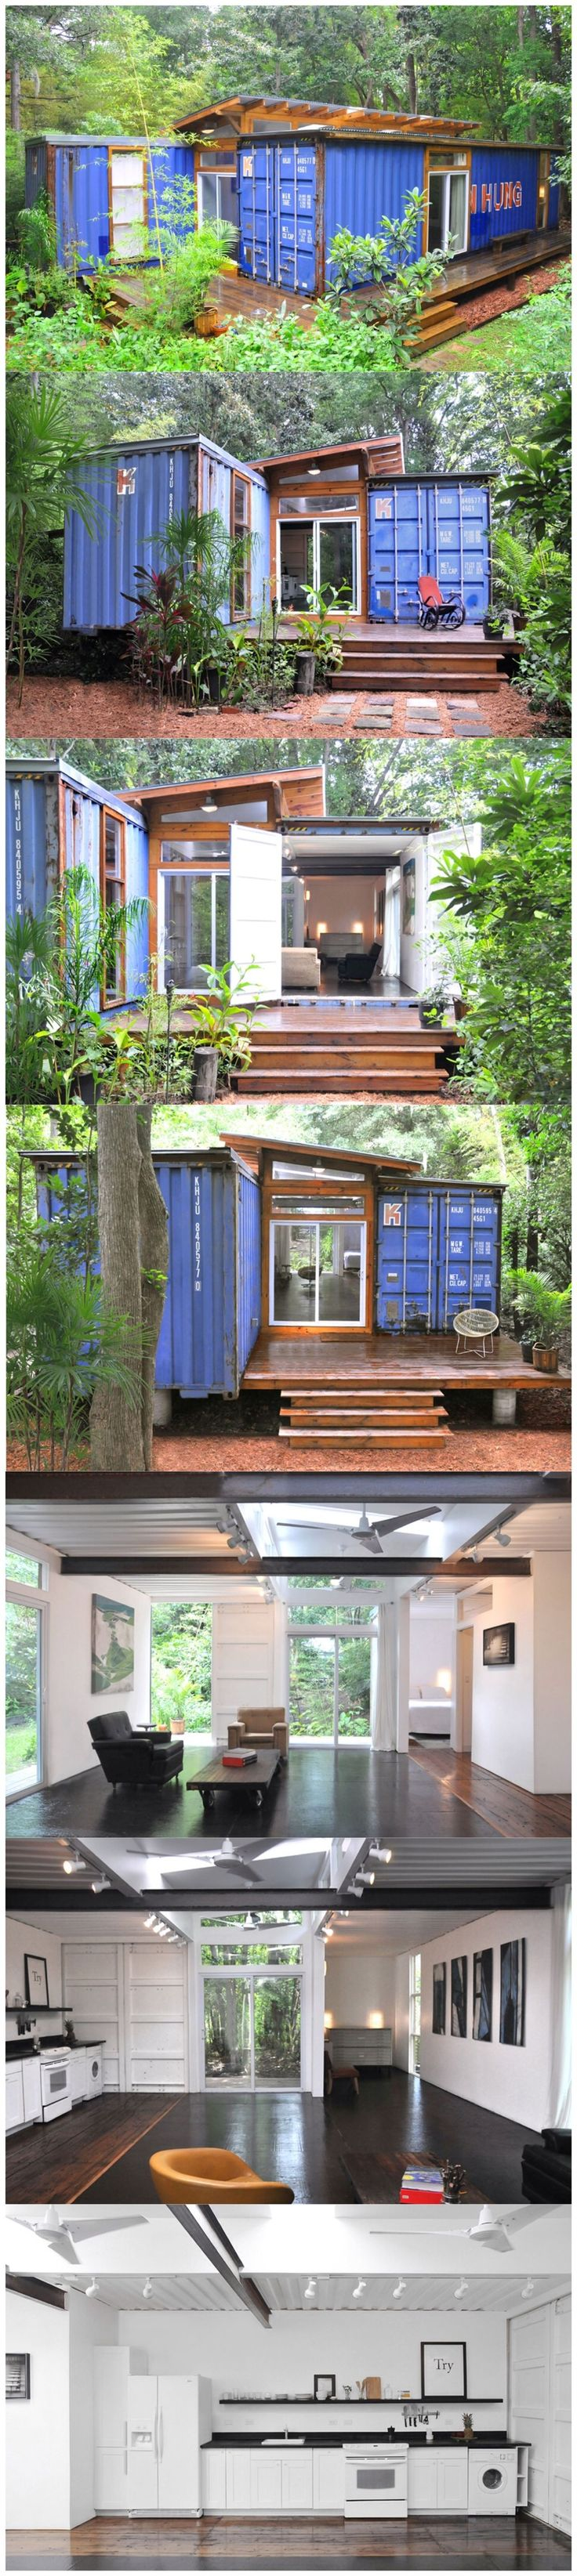 best container home images by glenn romasanta on Pinterest